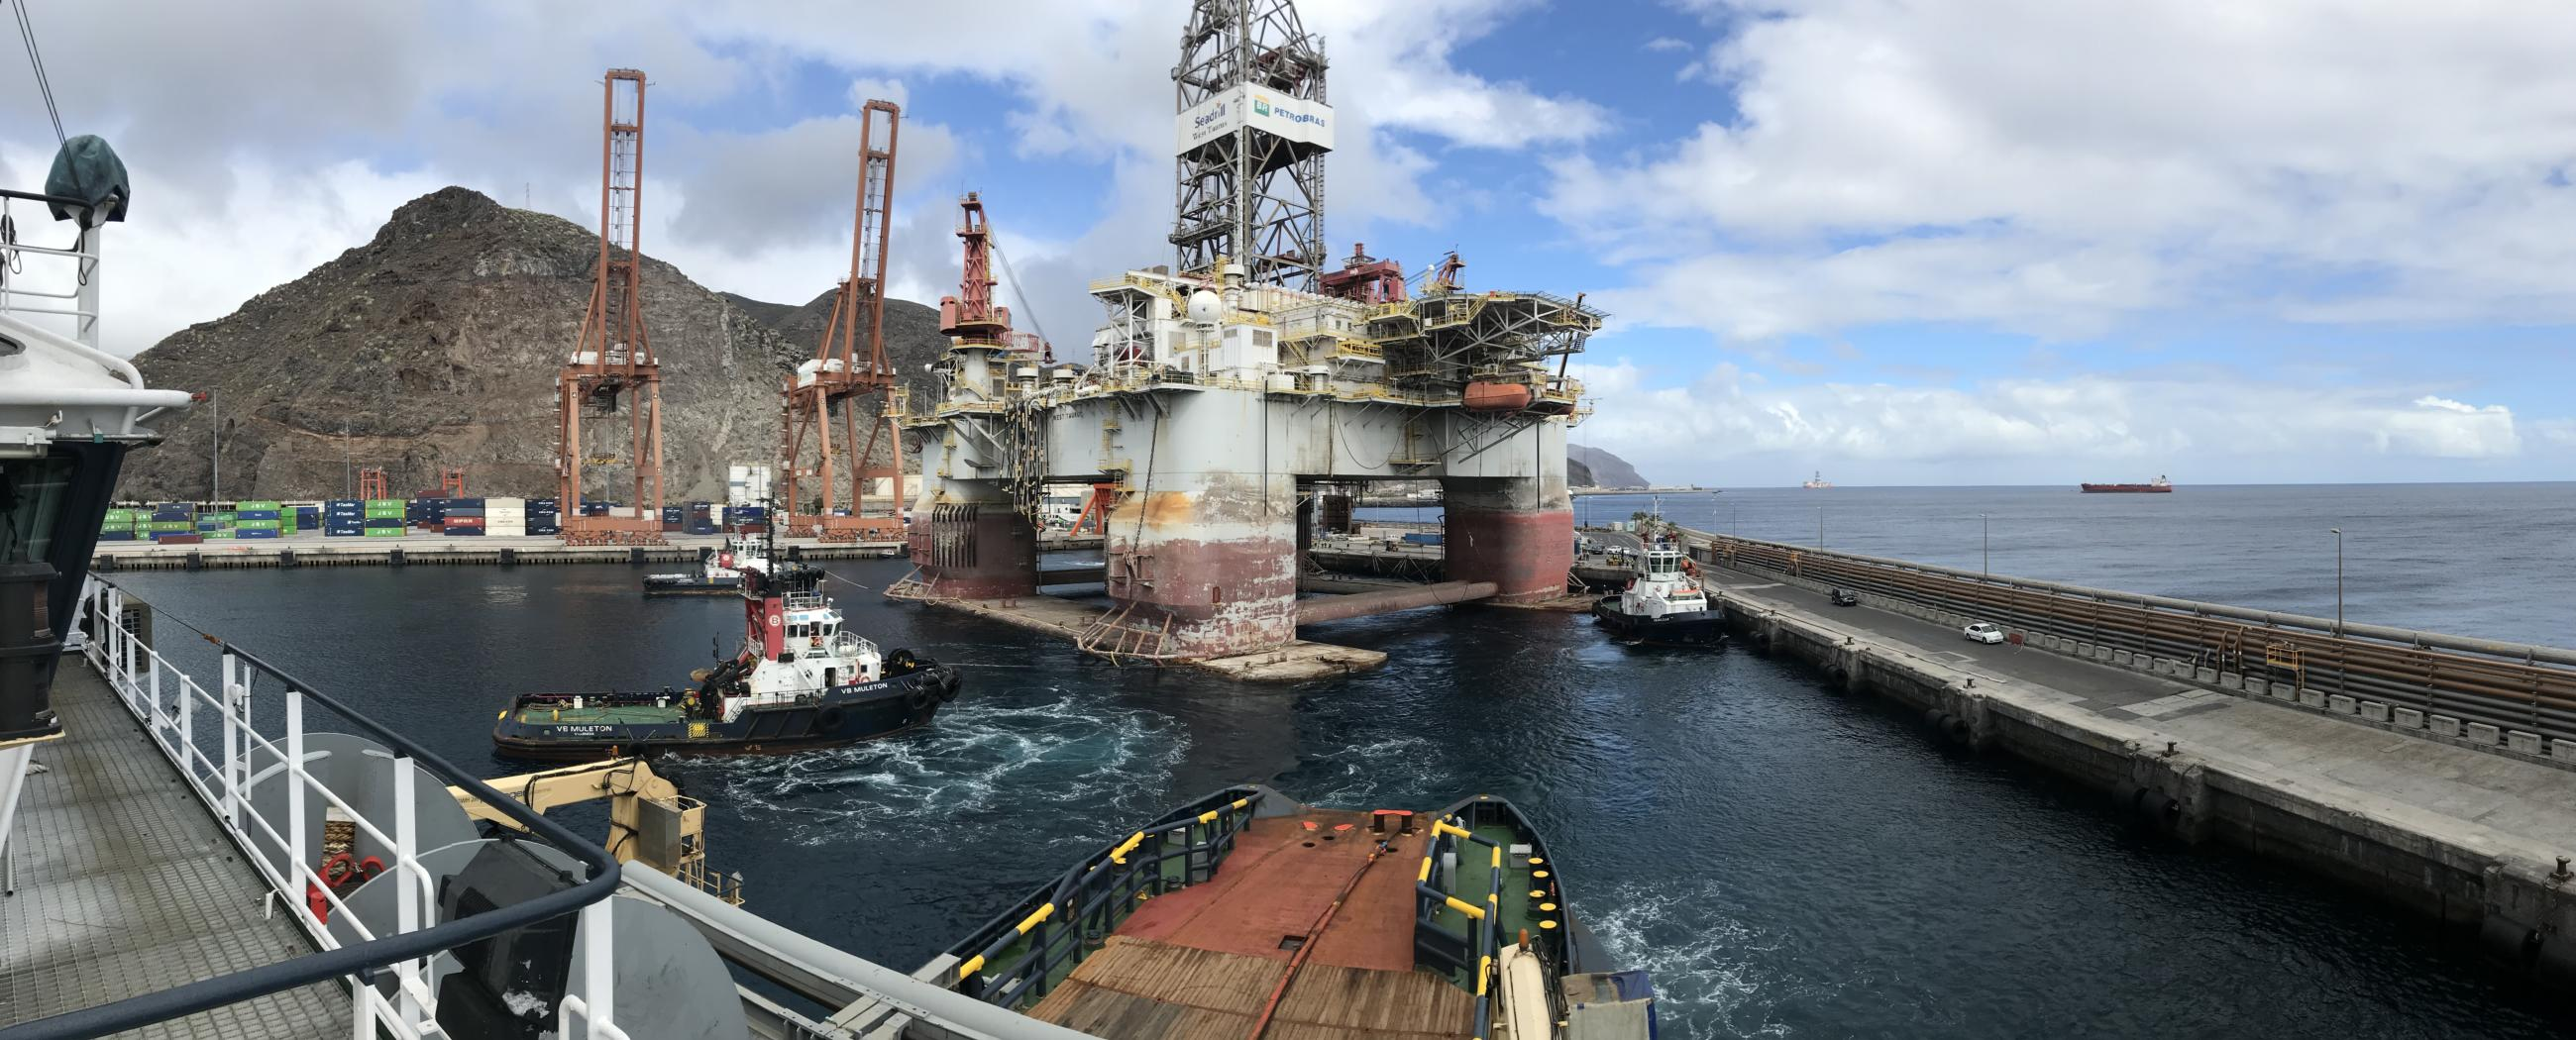 ALP-Centre-West-Taurus-Seadrill-rigmove-ssdr-Canary-Islands.JPG